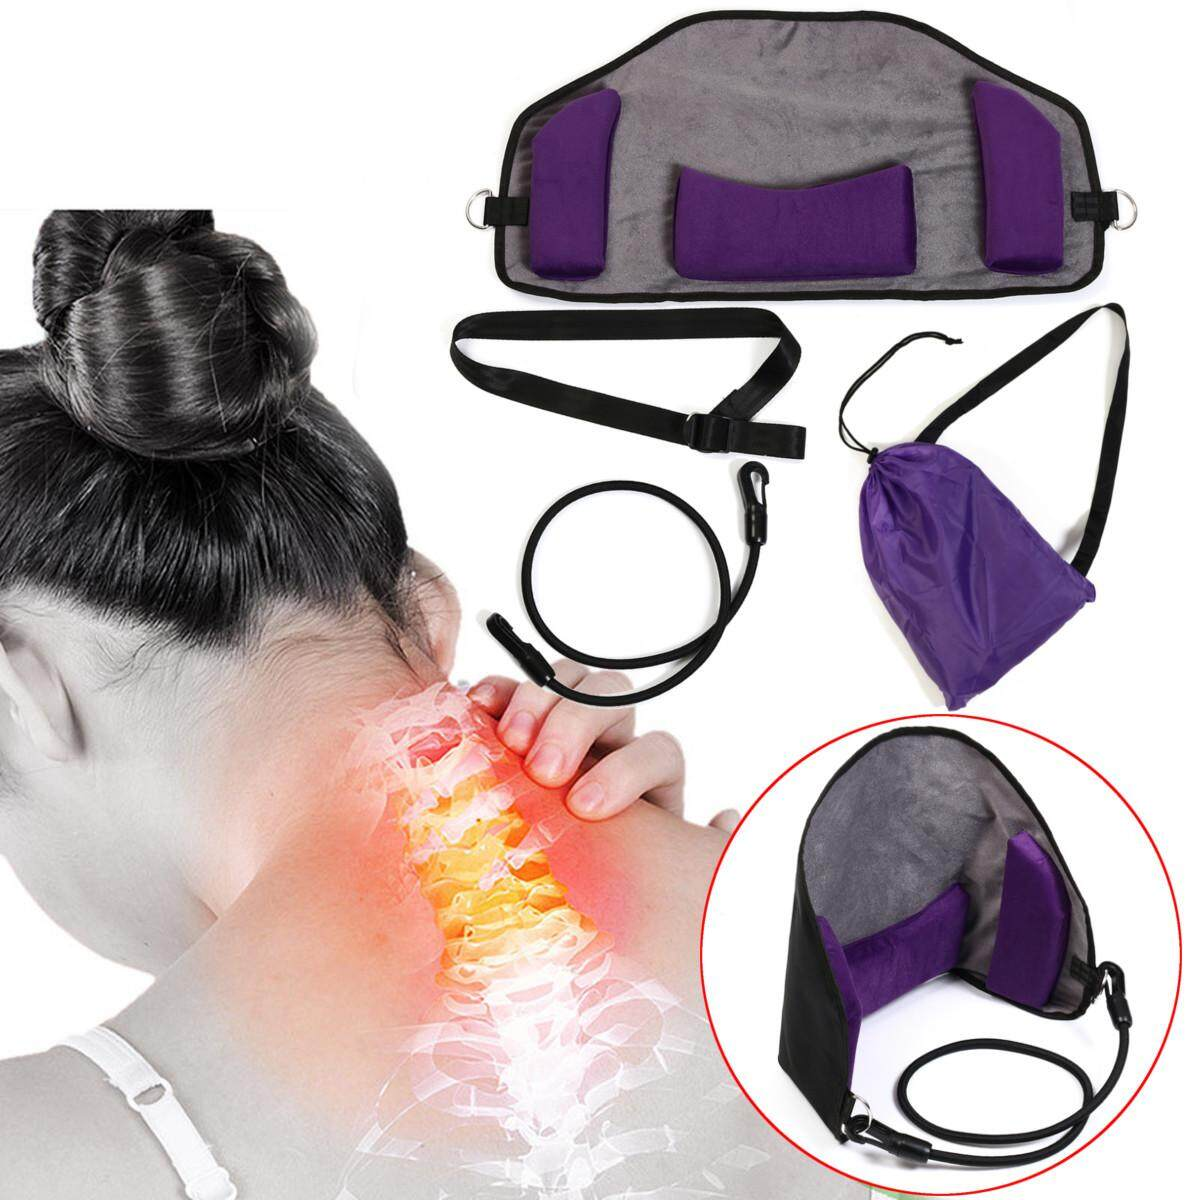 Neck Massager Hammock Traction Head Pain Relief Relaxion Blood Circulation Usa Intl Promo Code